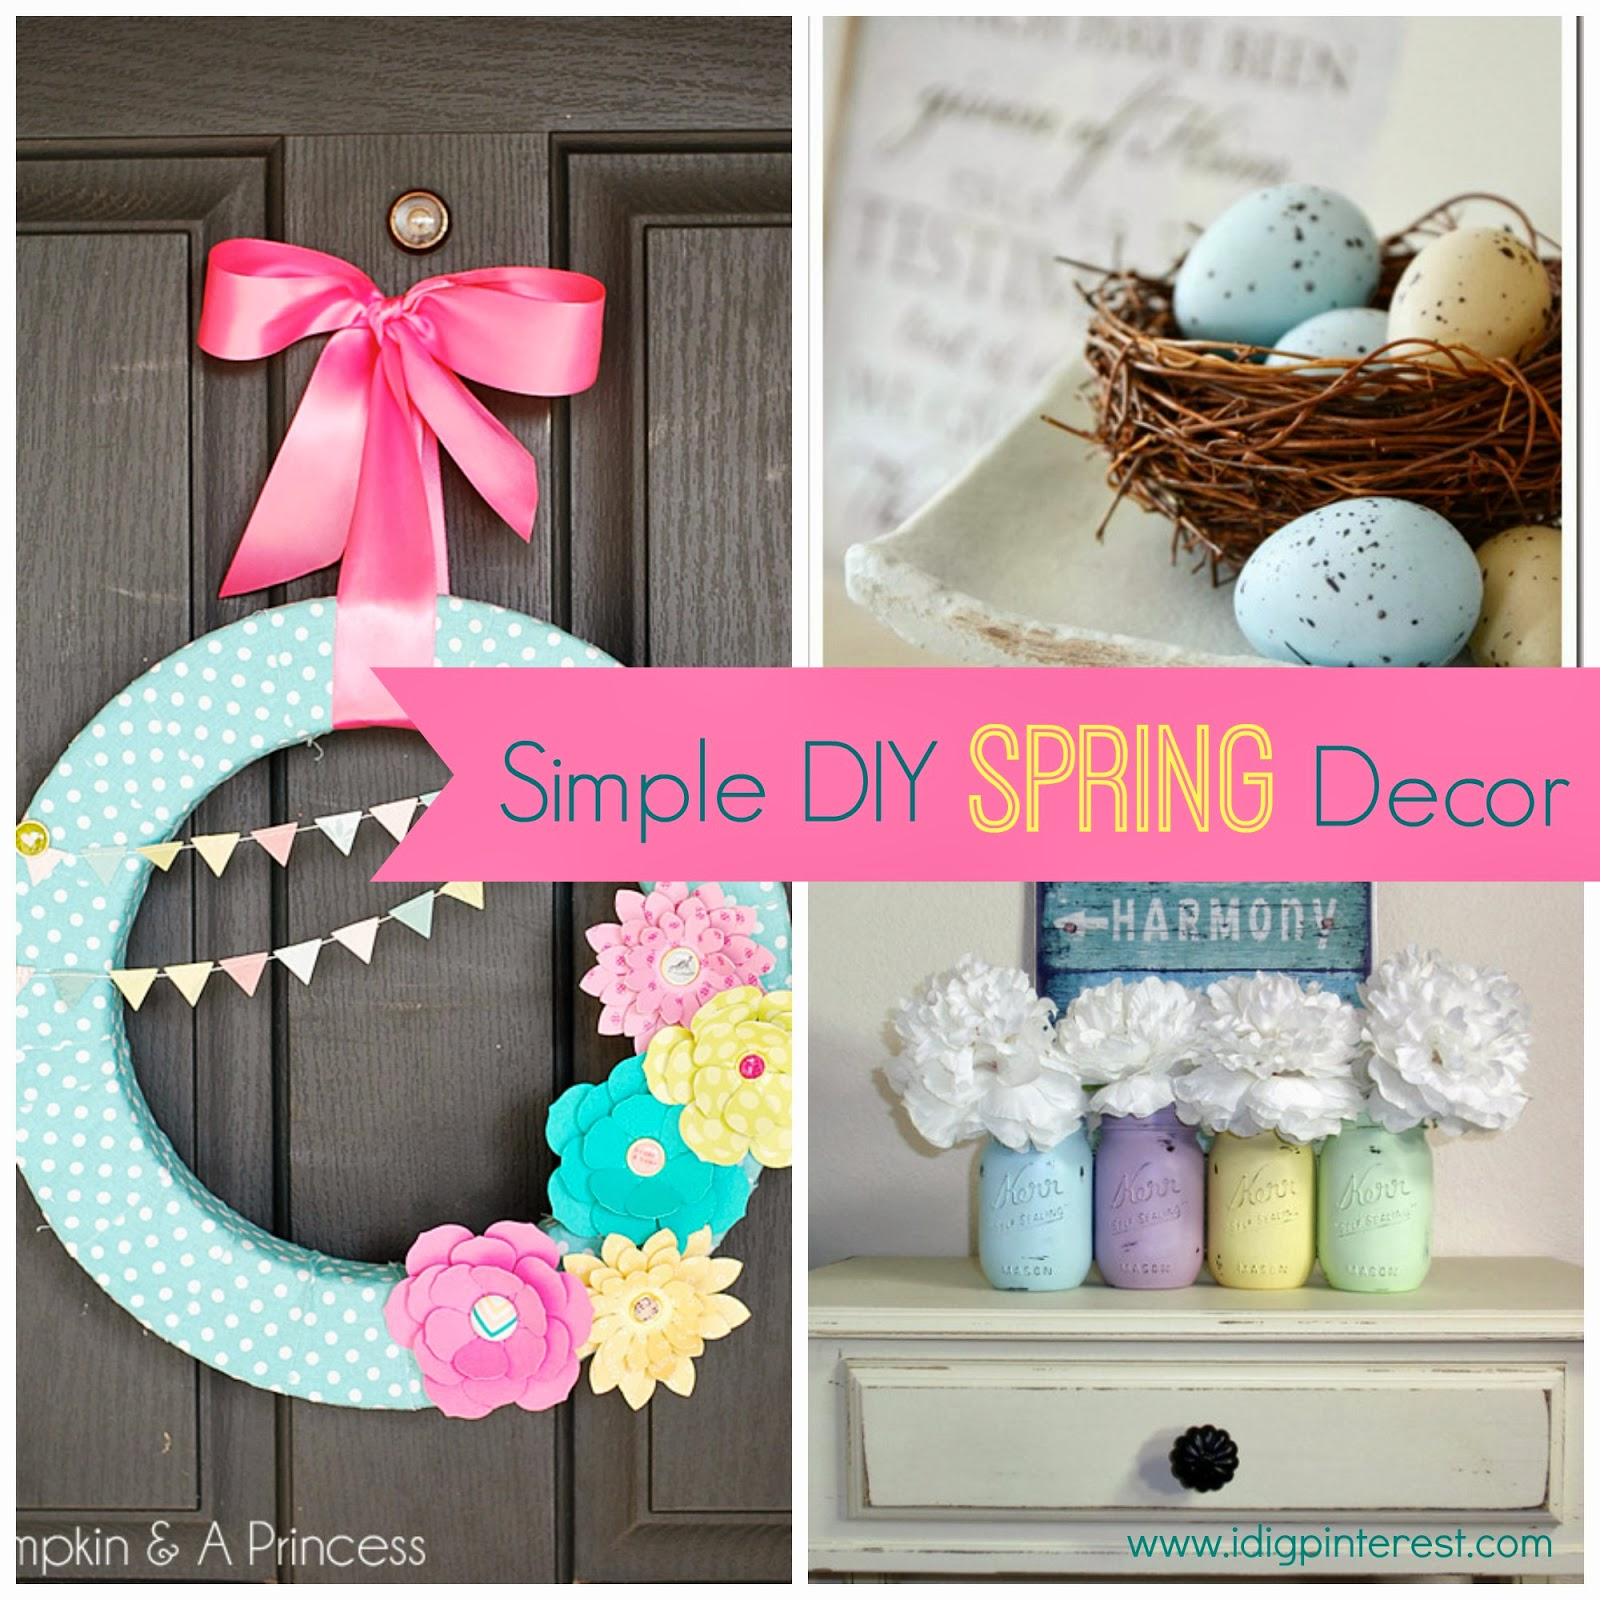 Simple diy spring decor ideas i dig pinterest for Simple diy room ideas